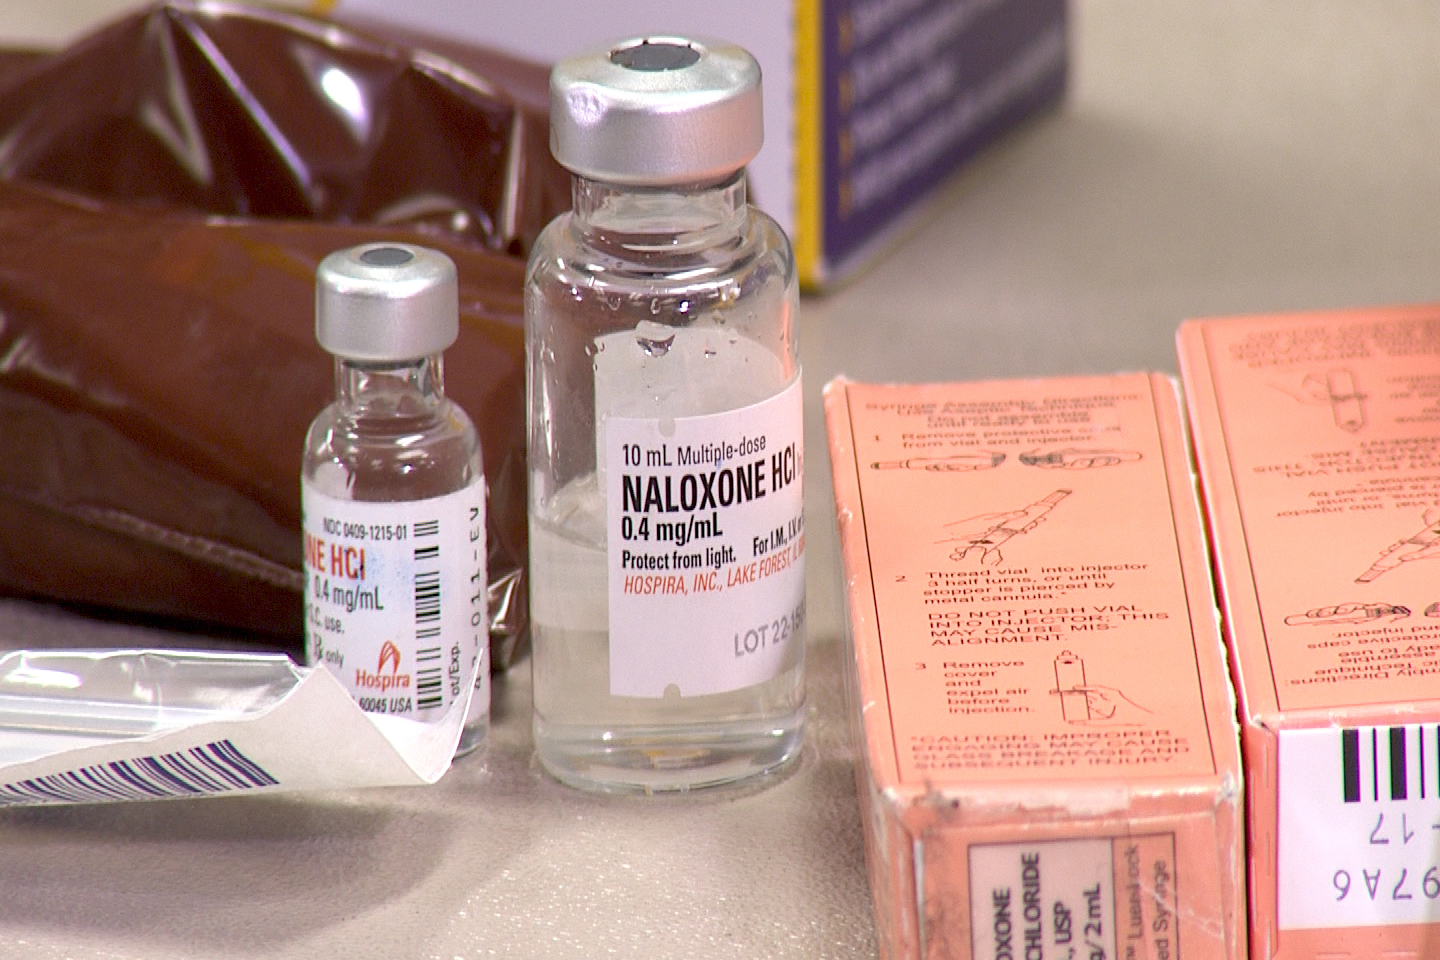 Naloxone is an overdose-reversal drug used to curb life-threatening overdoses.